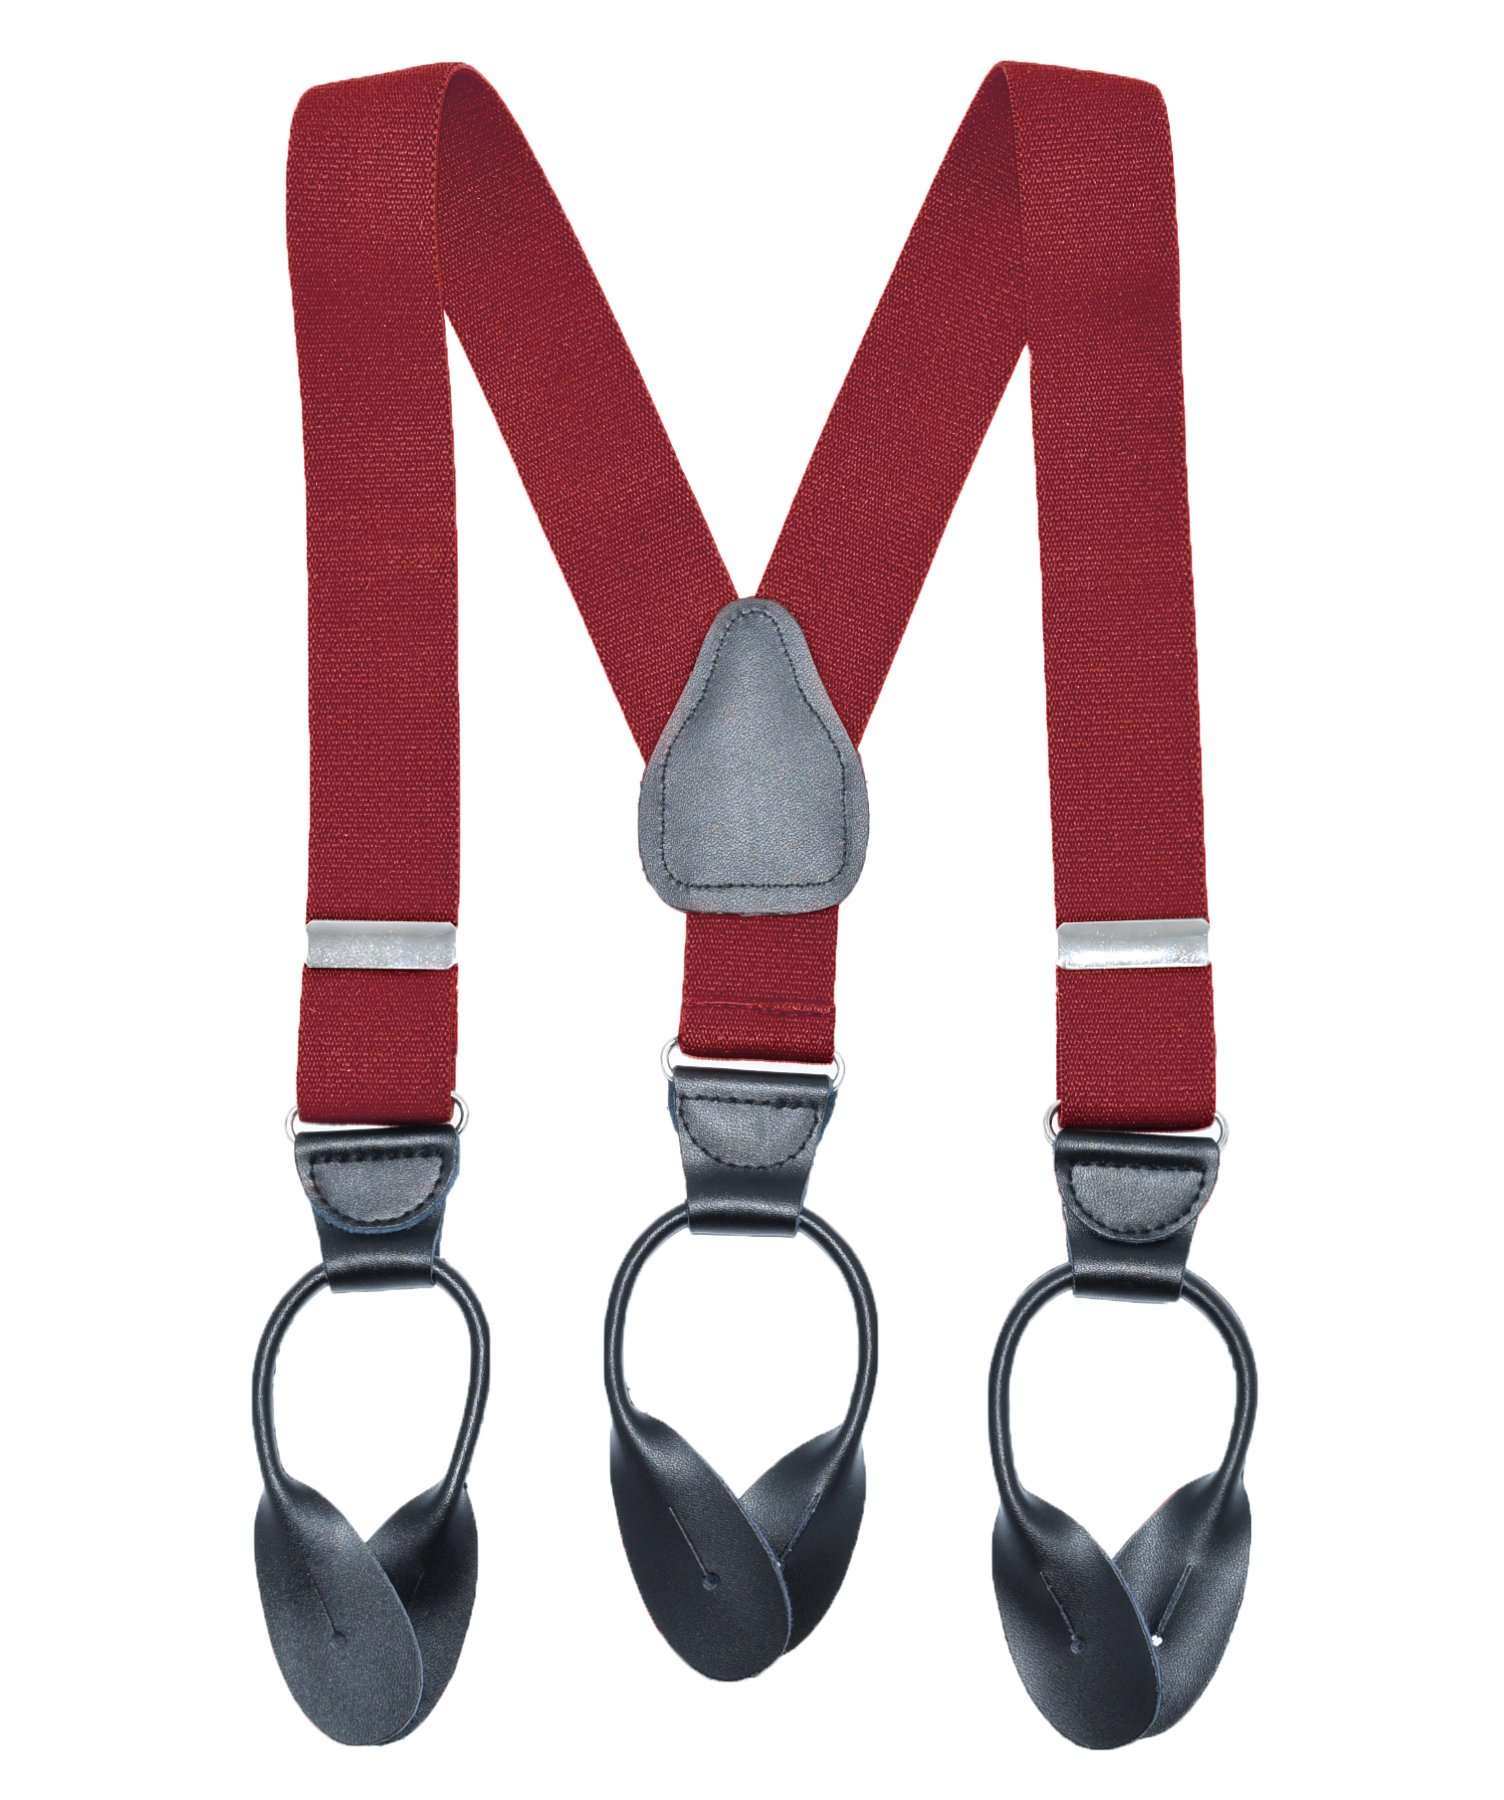 Button End Suspenders for KidsBoys Girls Toddlers and Baby MADE IN USA Elastic, Fully Adjustable With Genuine Leather Button Tabs and Crosspatch - Red